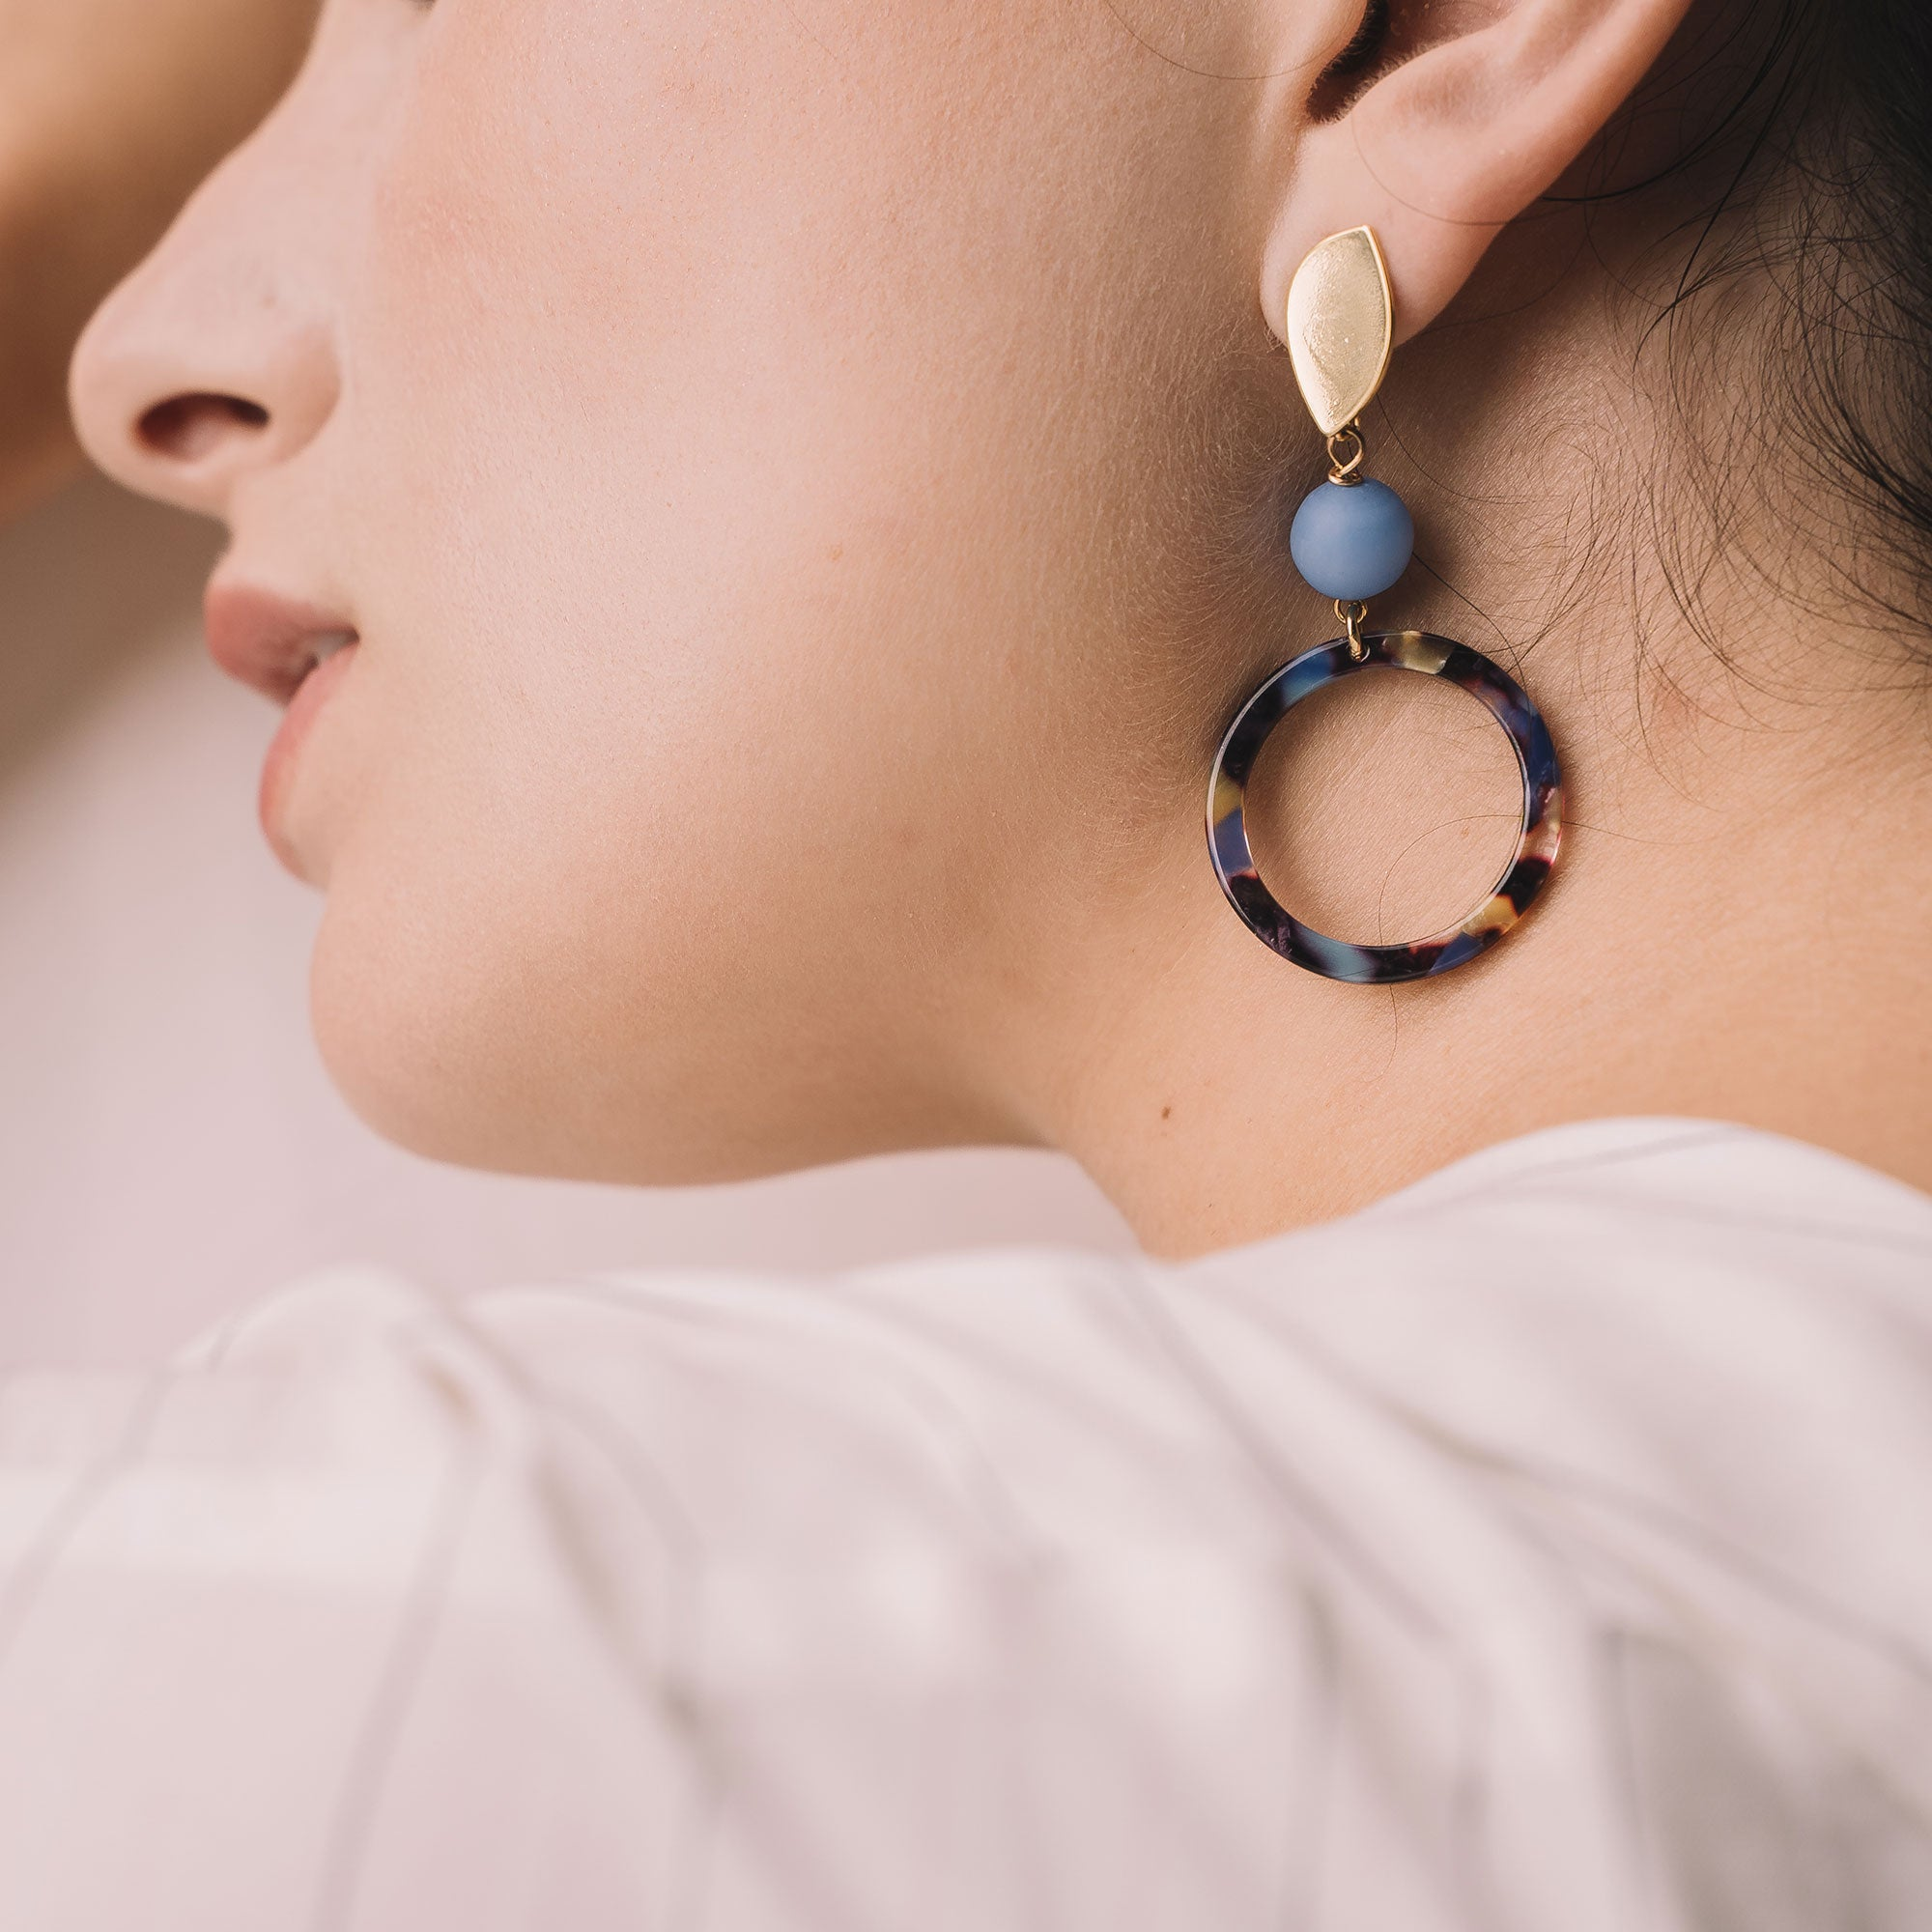 acetate hoop earrings tortoiseshell earrings sandrine devost